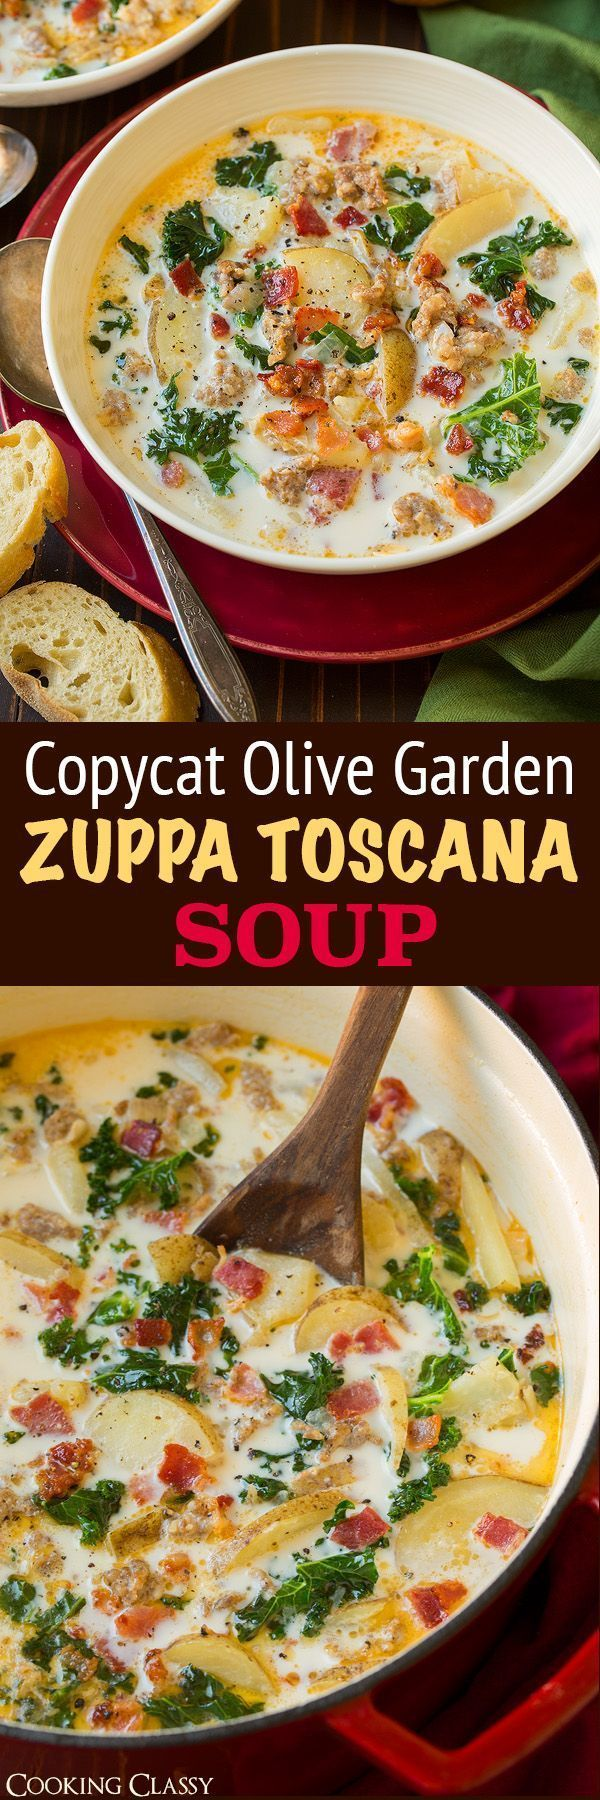 Best 25 Italian Soup Recipes Ideas On Pinterest Zuppa Toscana Zuppa Toscana Soup And Soup